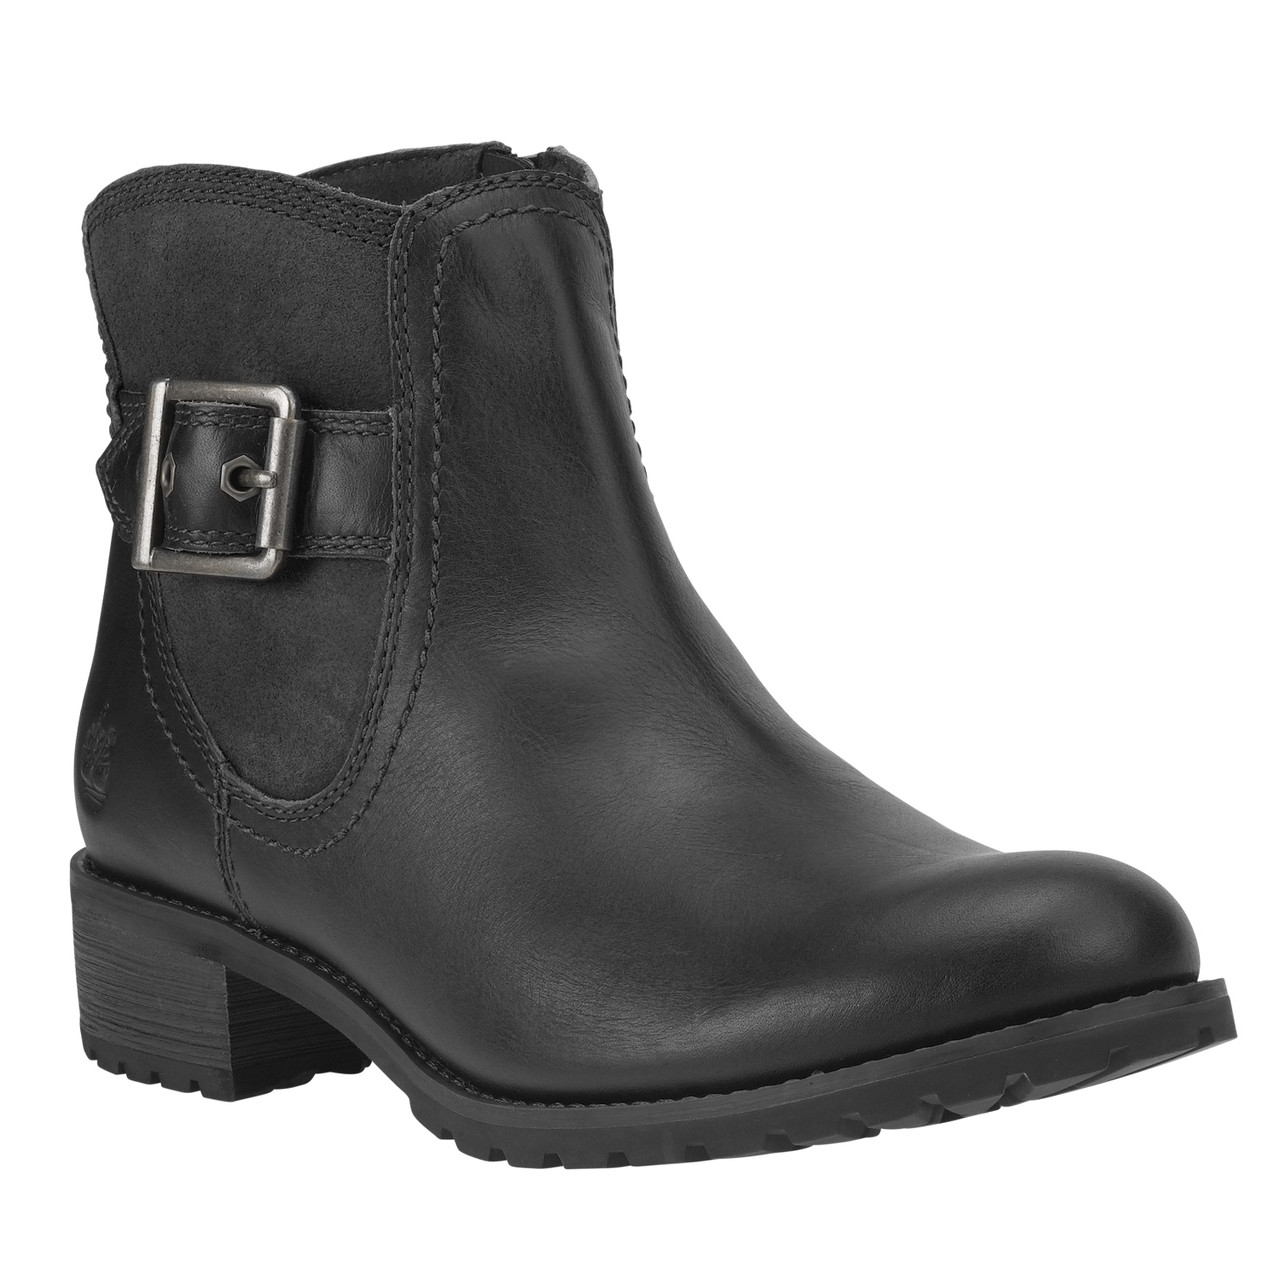 newest factory outlets preview of Women's Timberland Bethel Heights Ankle Boot